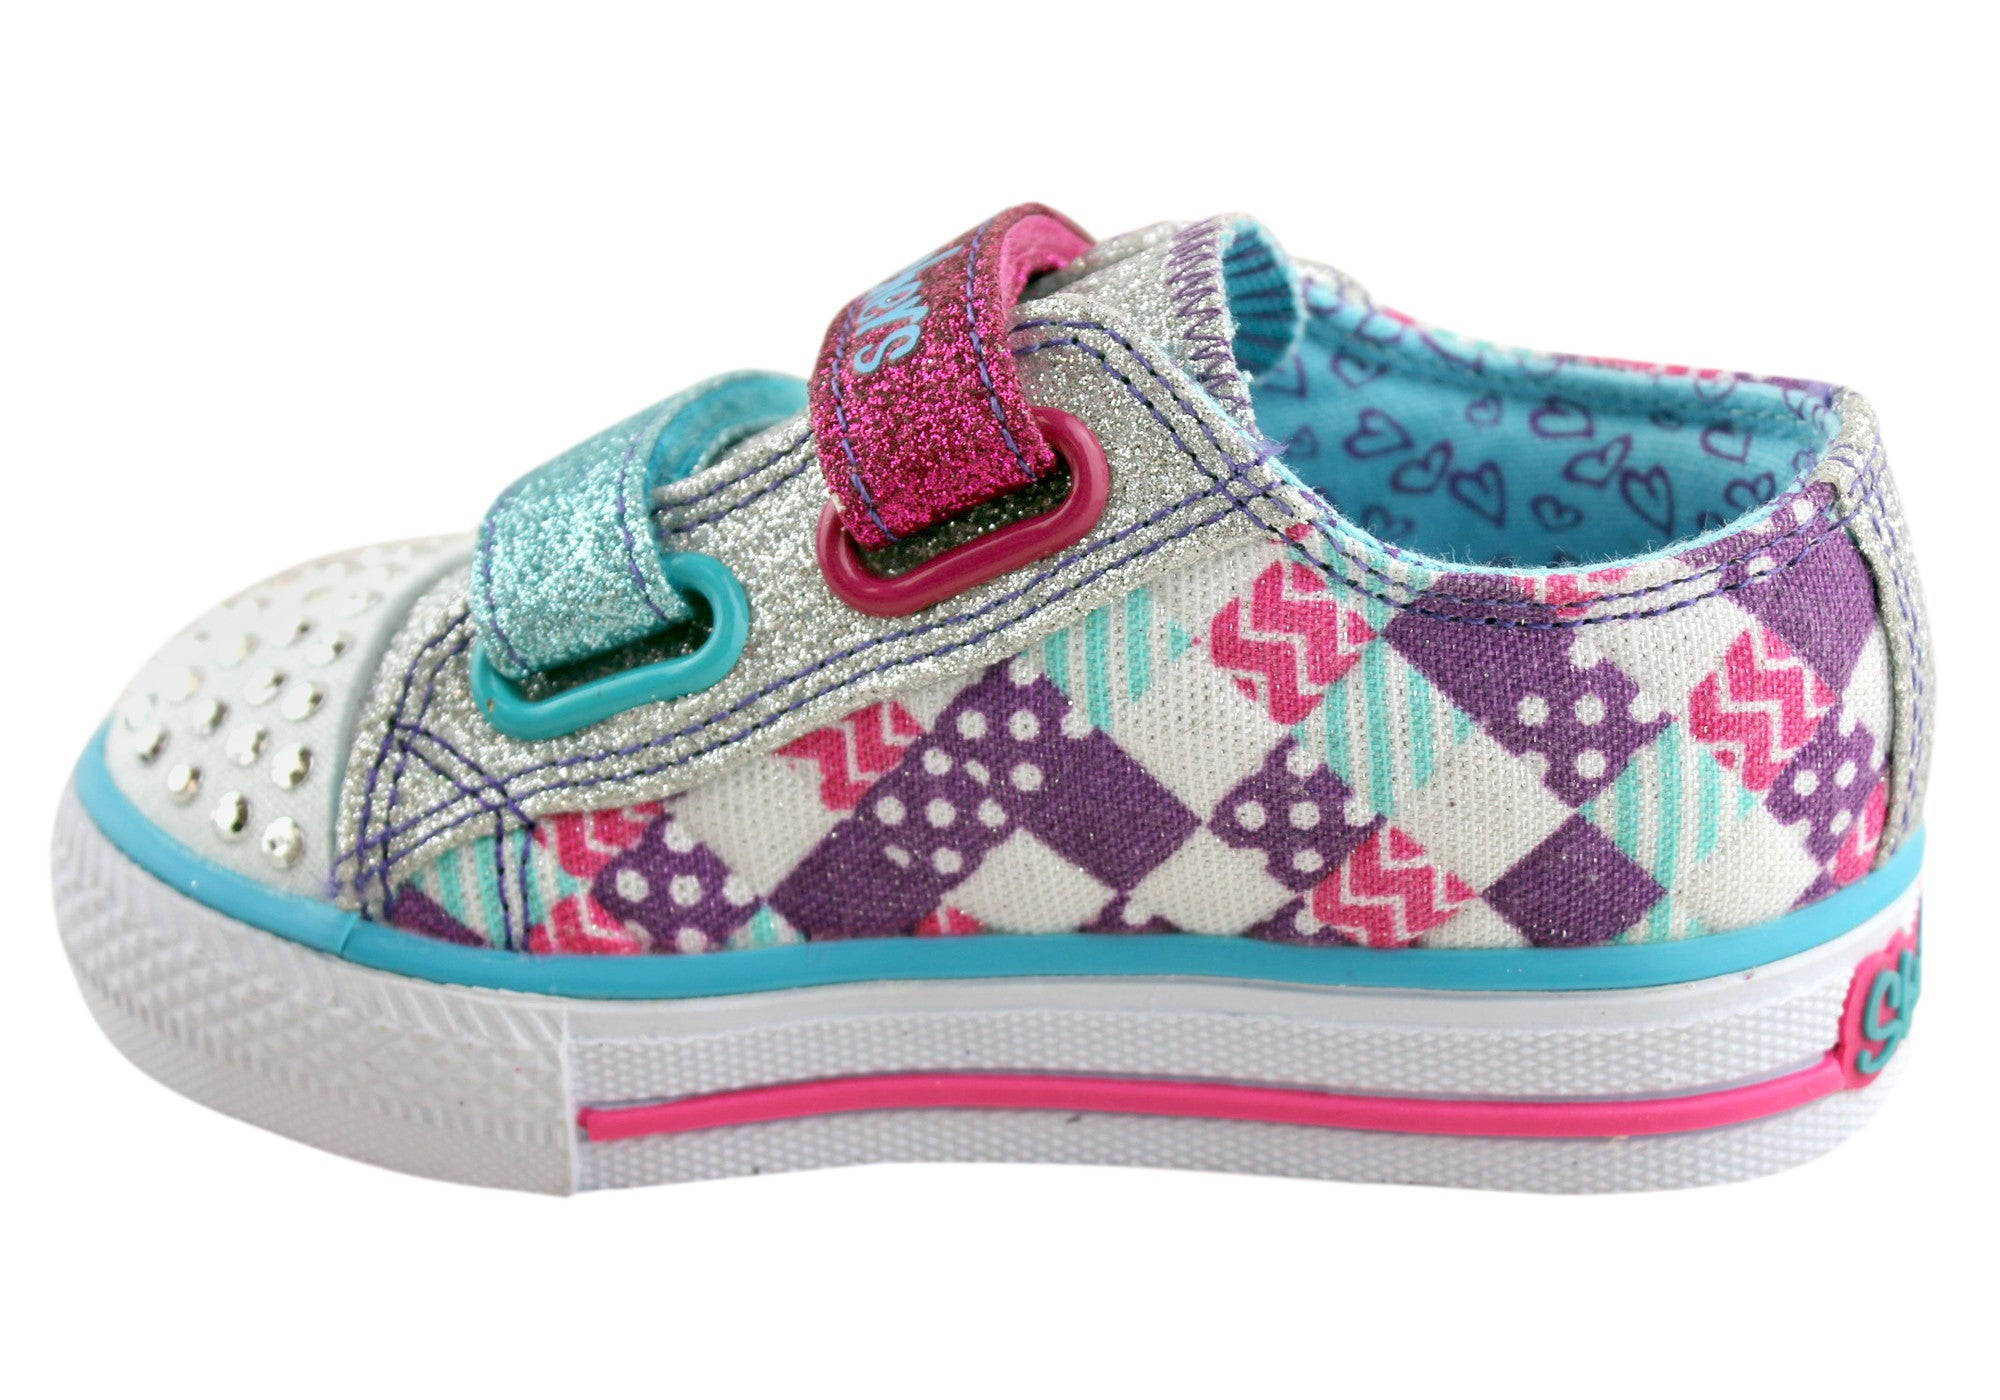 Skechers Toddler/Girls S Lights Shuffles Patchwork Gal